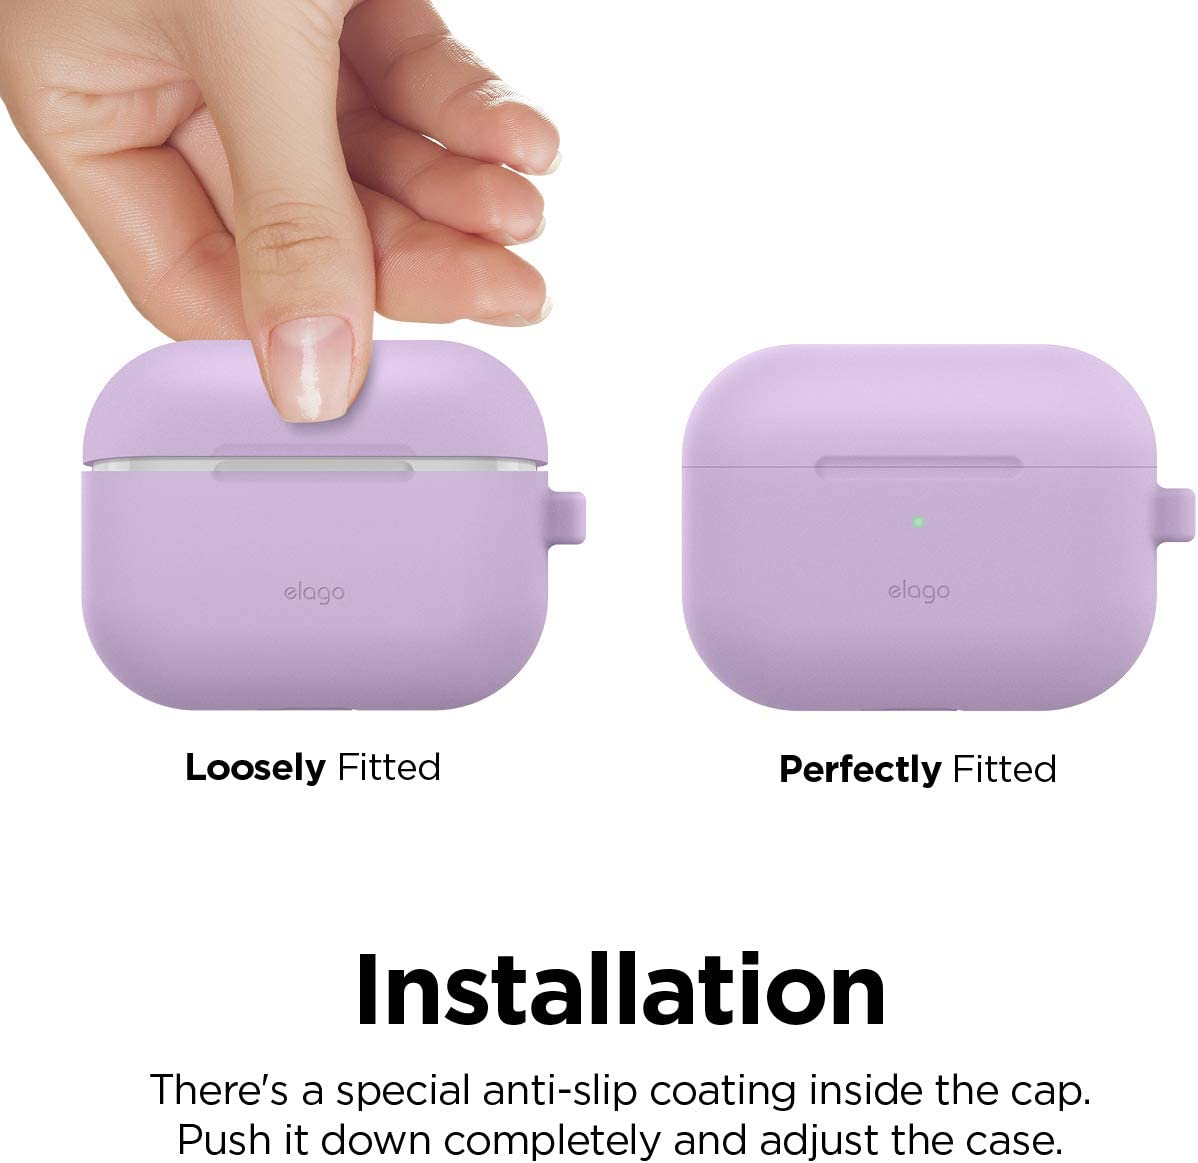 elago AirPods Pro Case Silicone Cover Designed for Apple AirPods Pro Case LED visible Nightglow Blue Premium Silicone Case for AirPods Pro 360/° Full body Protection